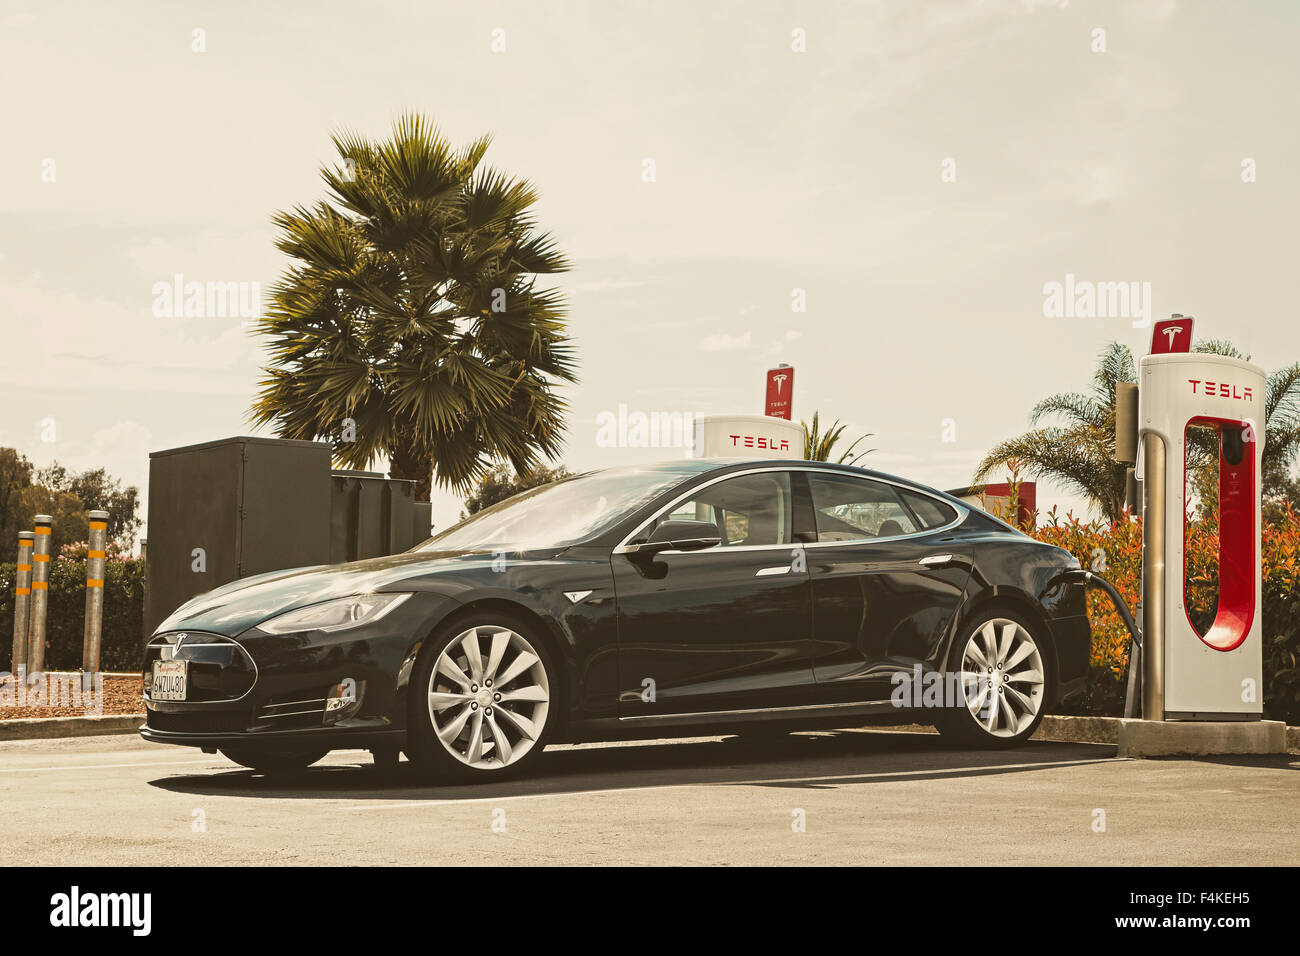 Tesla electric automobile at a charging point Gilroy Califpornia USA - Stock Image